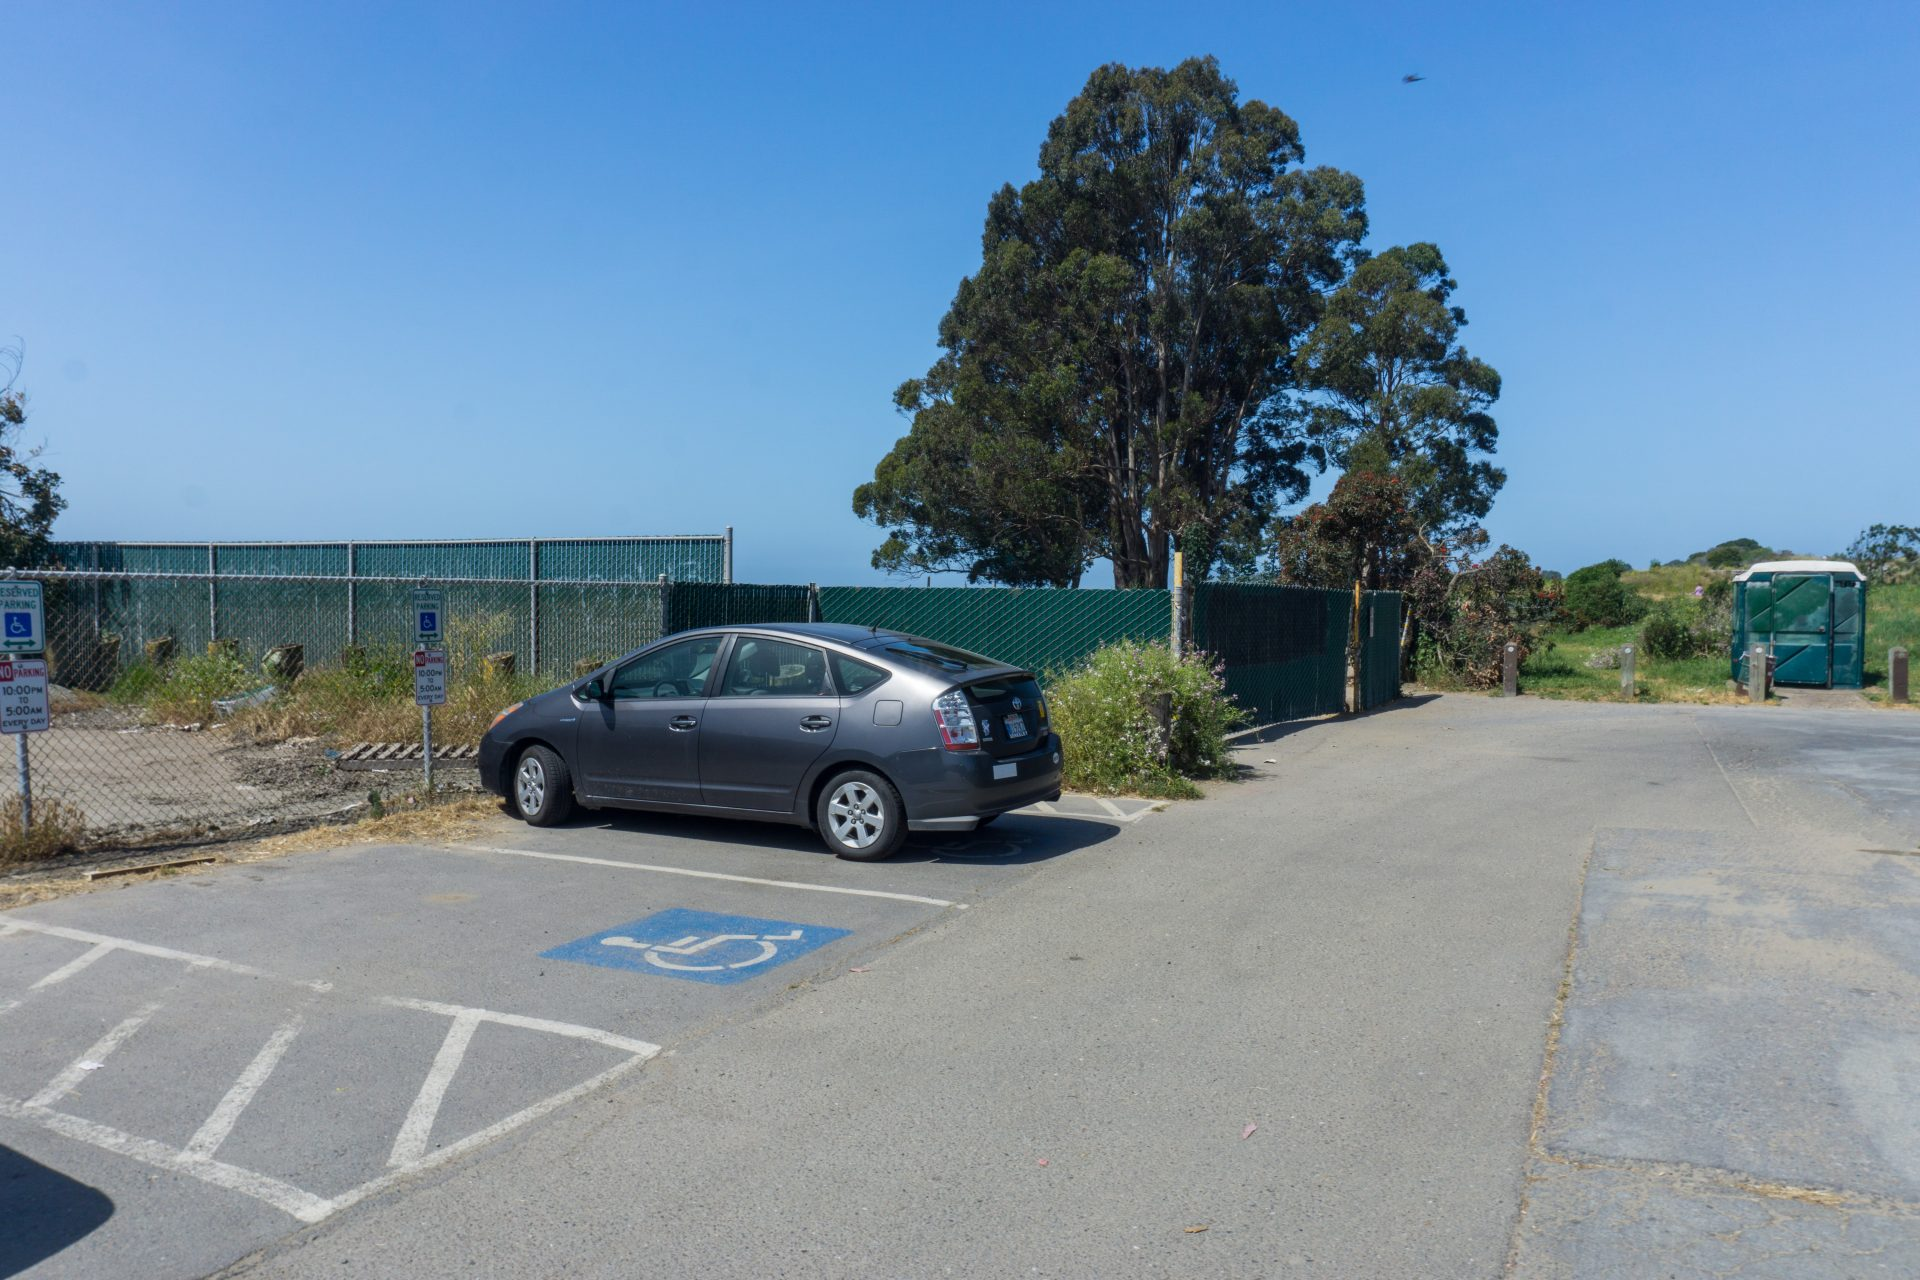 Handicap parking spot, gray Prius. Accessible toilet in distance